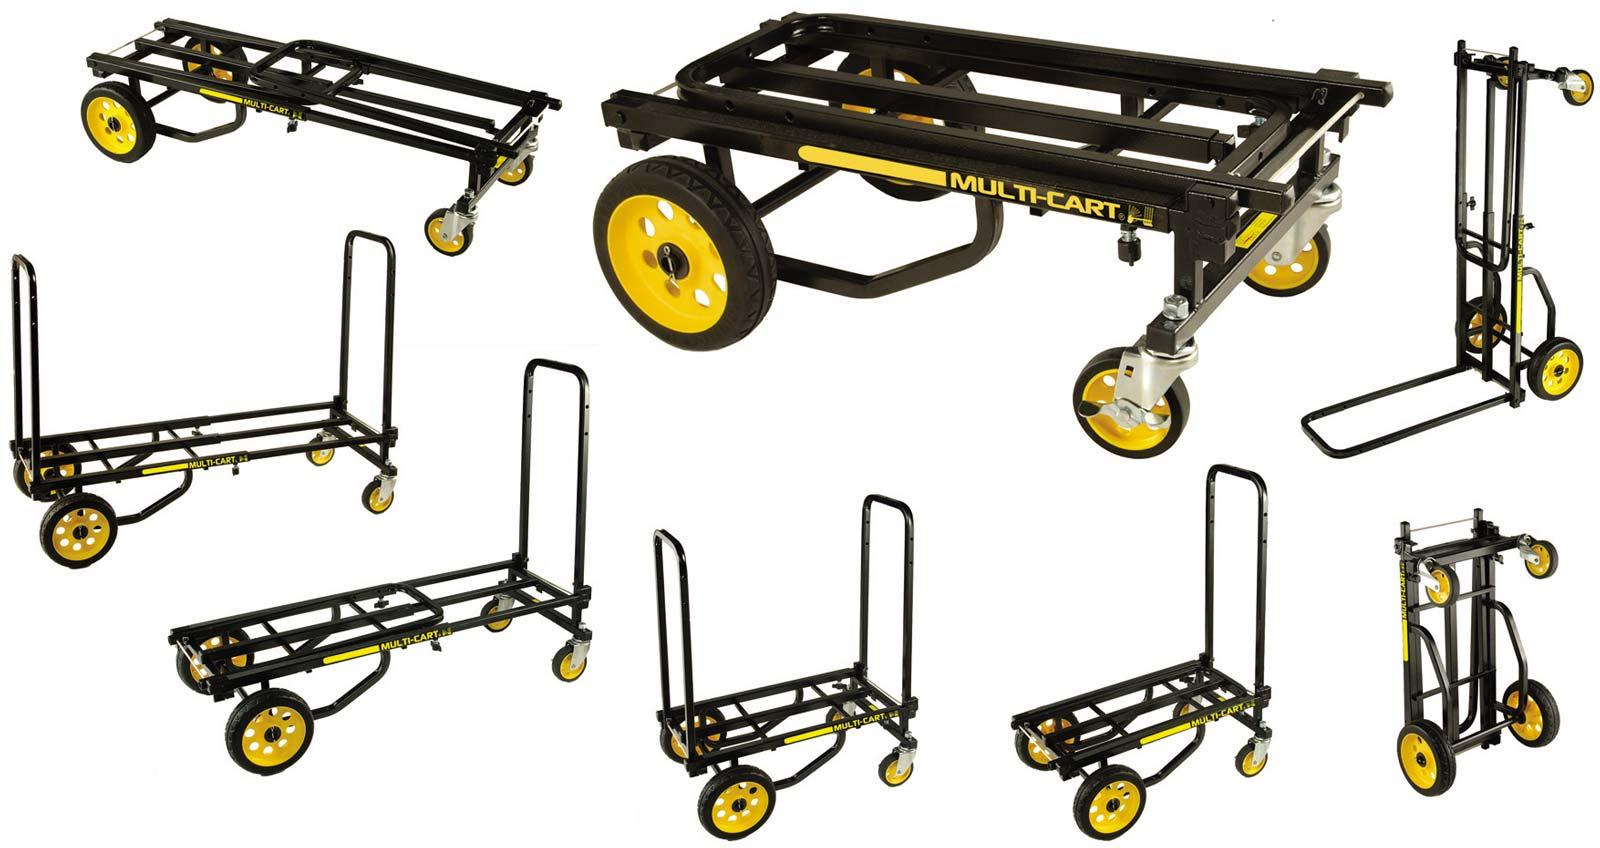 odyssey_or6rt_rock-n-roller_mini_handtruck_multi_cart_r6rt_configuration.jpg